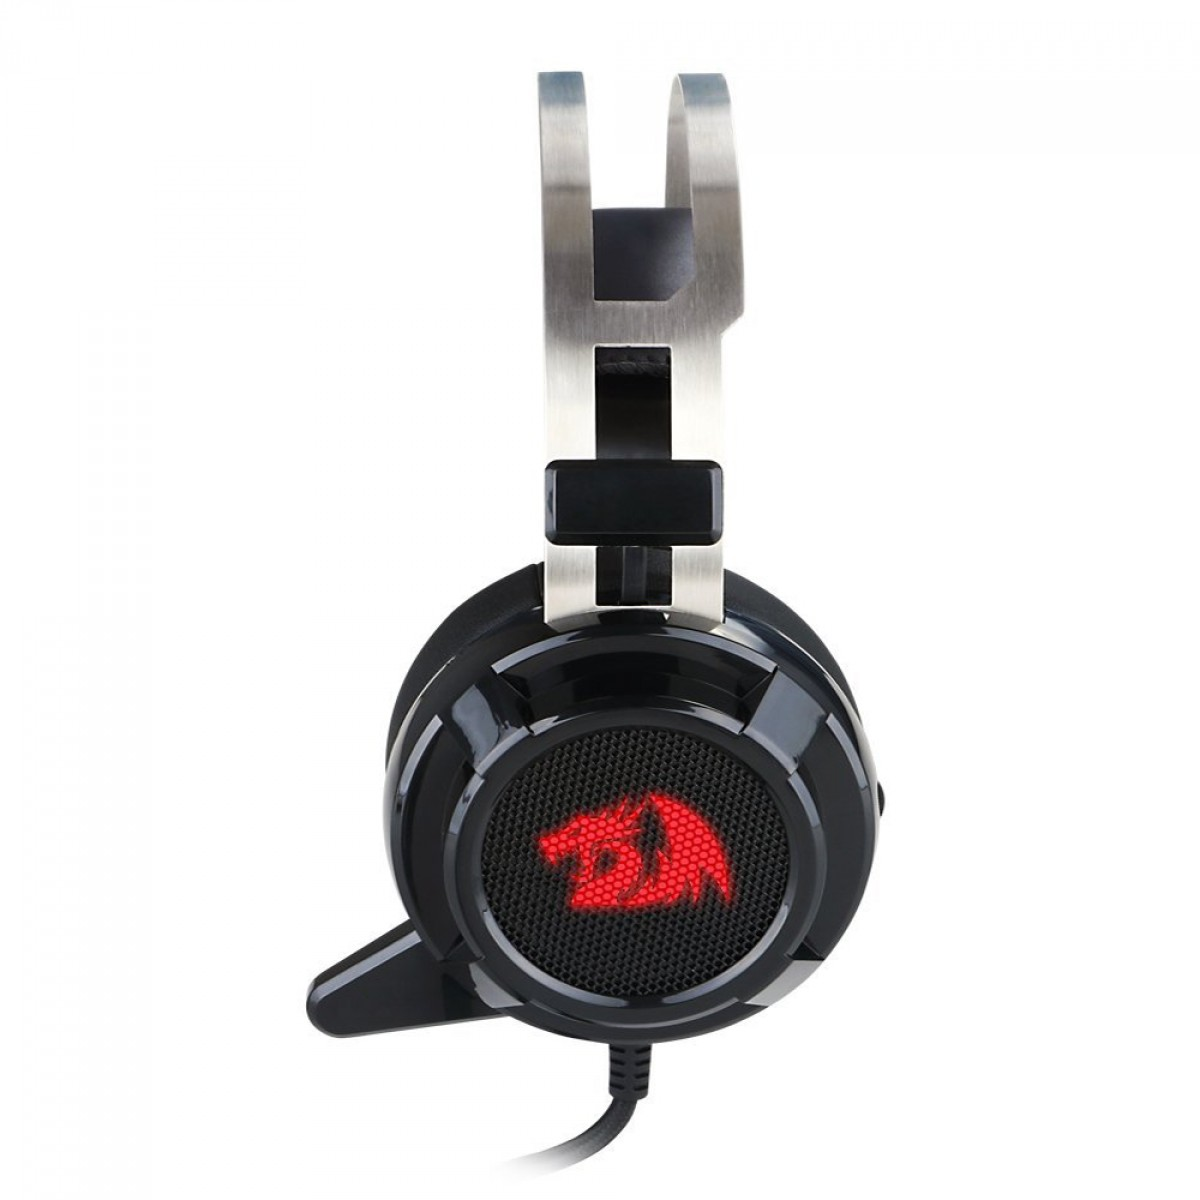 Headset Gamer Redragon Siren 2, USB, 7.1 Surround, Black, H301USB-1